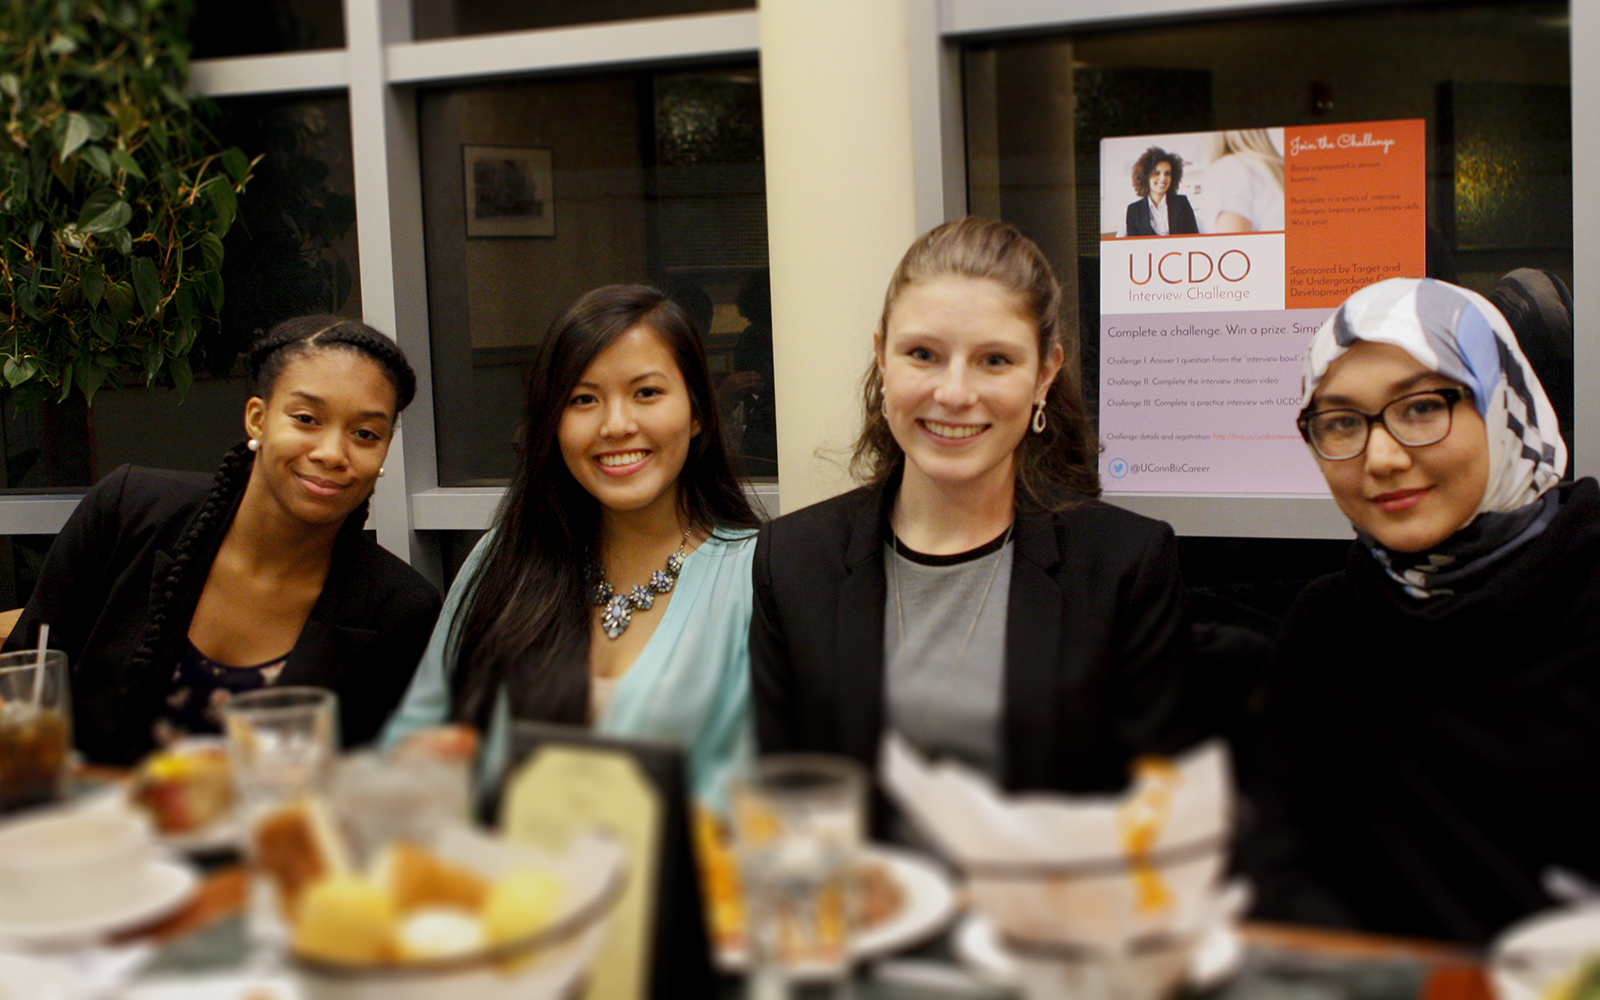 Interview Challenge participants enjoy dinner at Chuck & Augie's restaurant on December 8, 2015 (Juanita Austin/UConn School of Business)